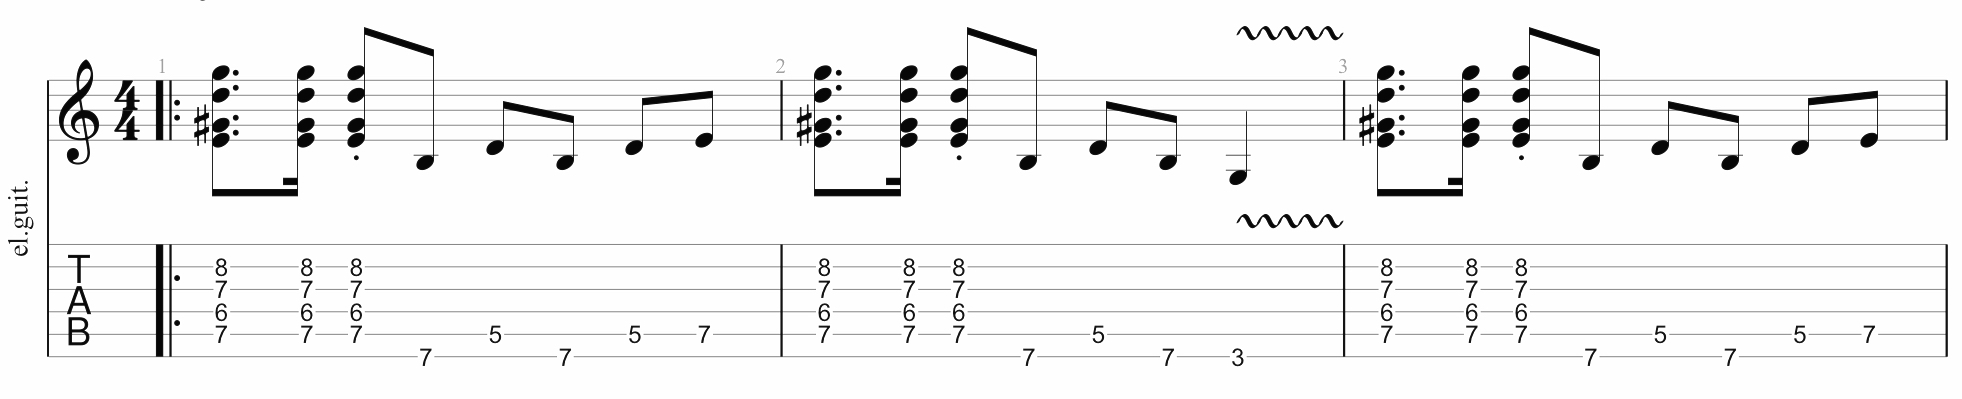 5 Easy Licks in the Style of Jimi Hendrix | Guitar Pro Blog